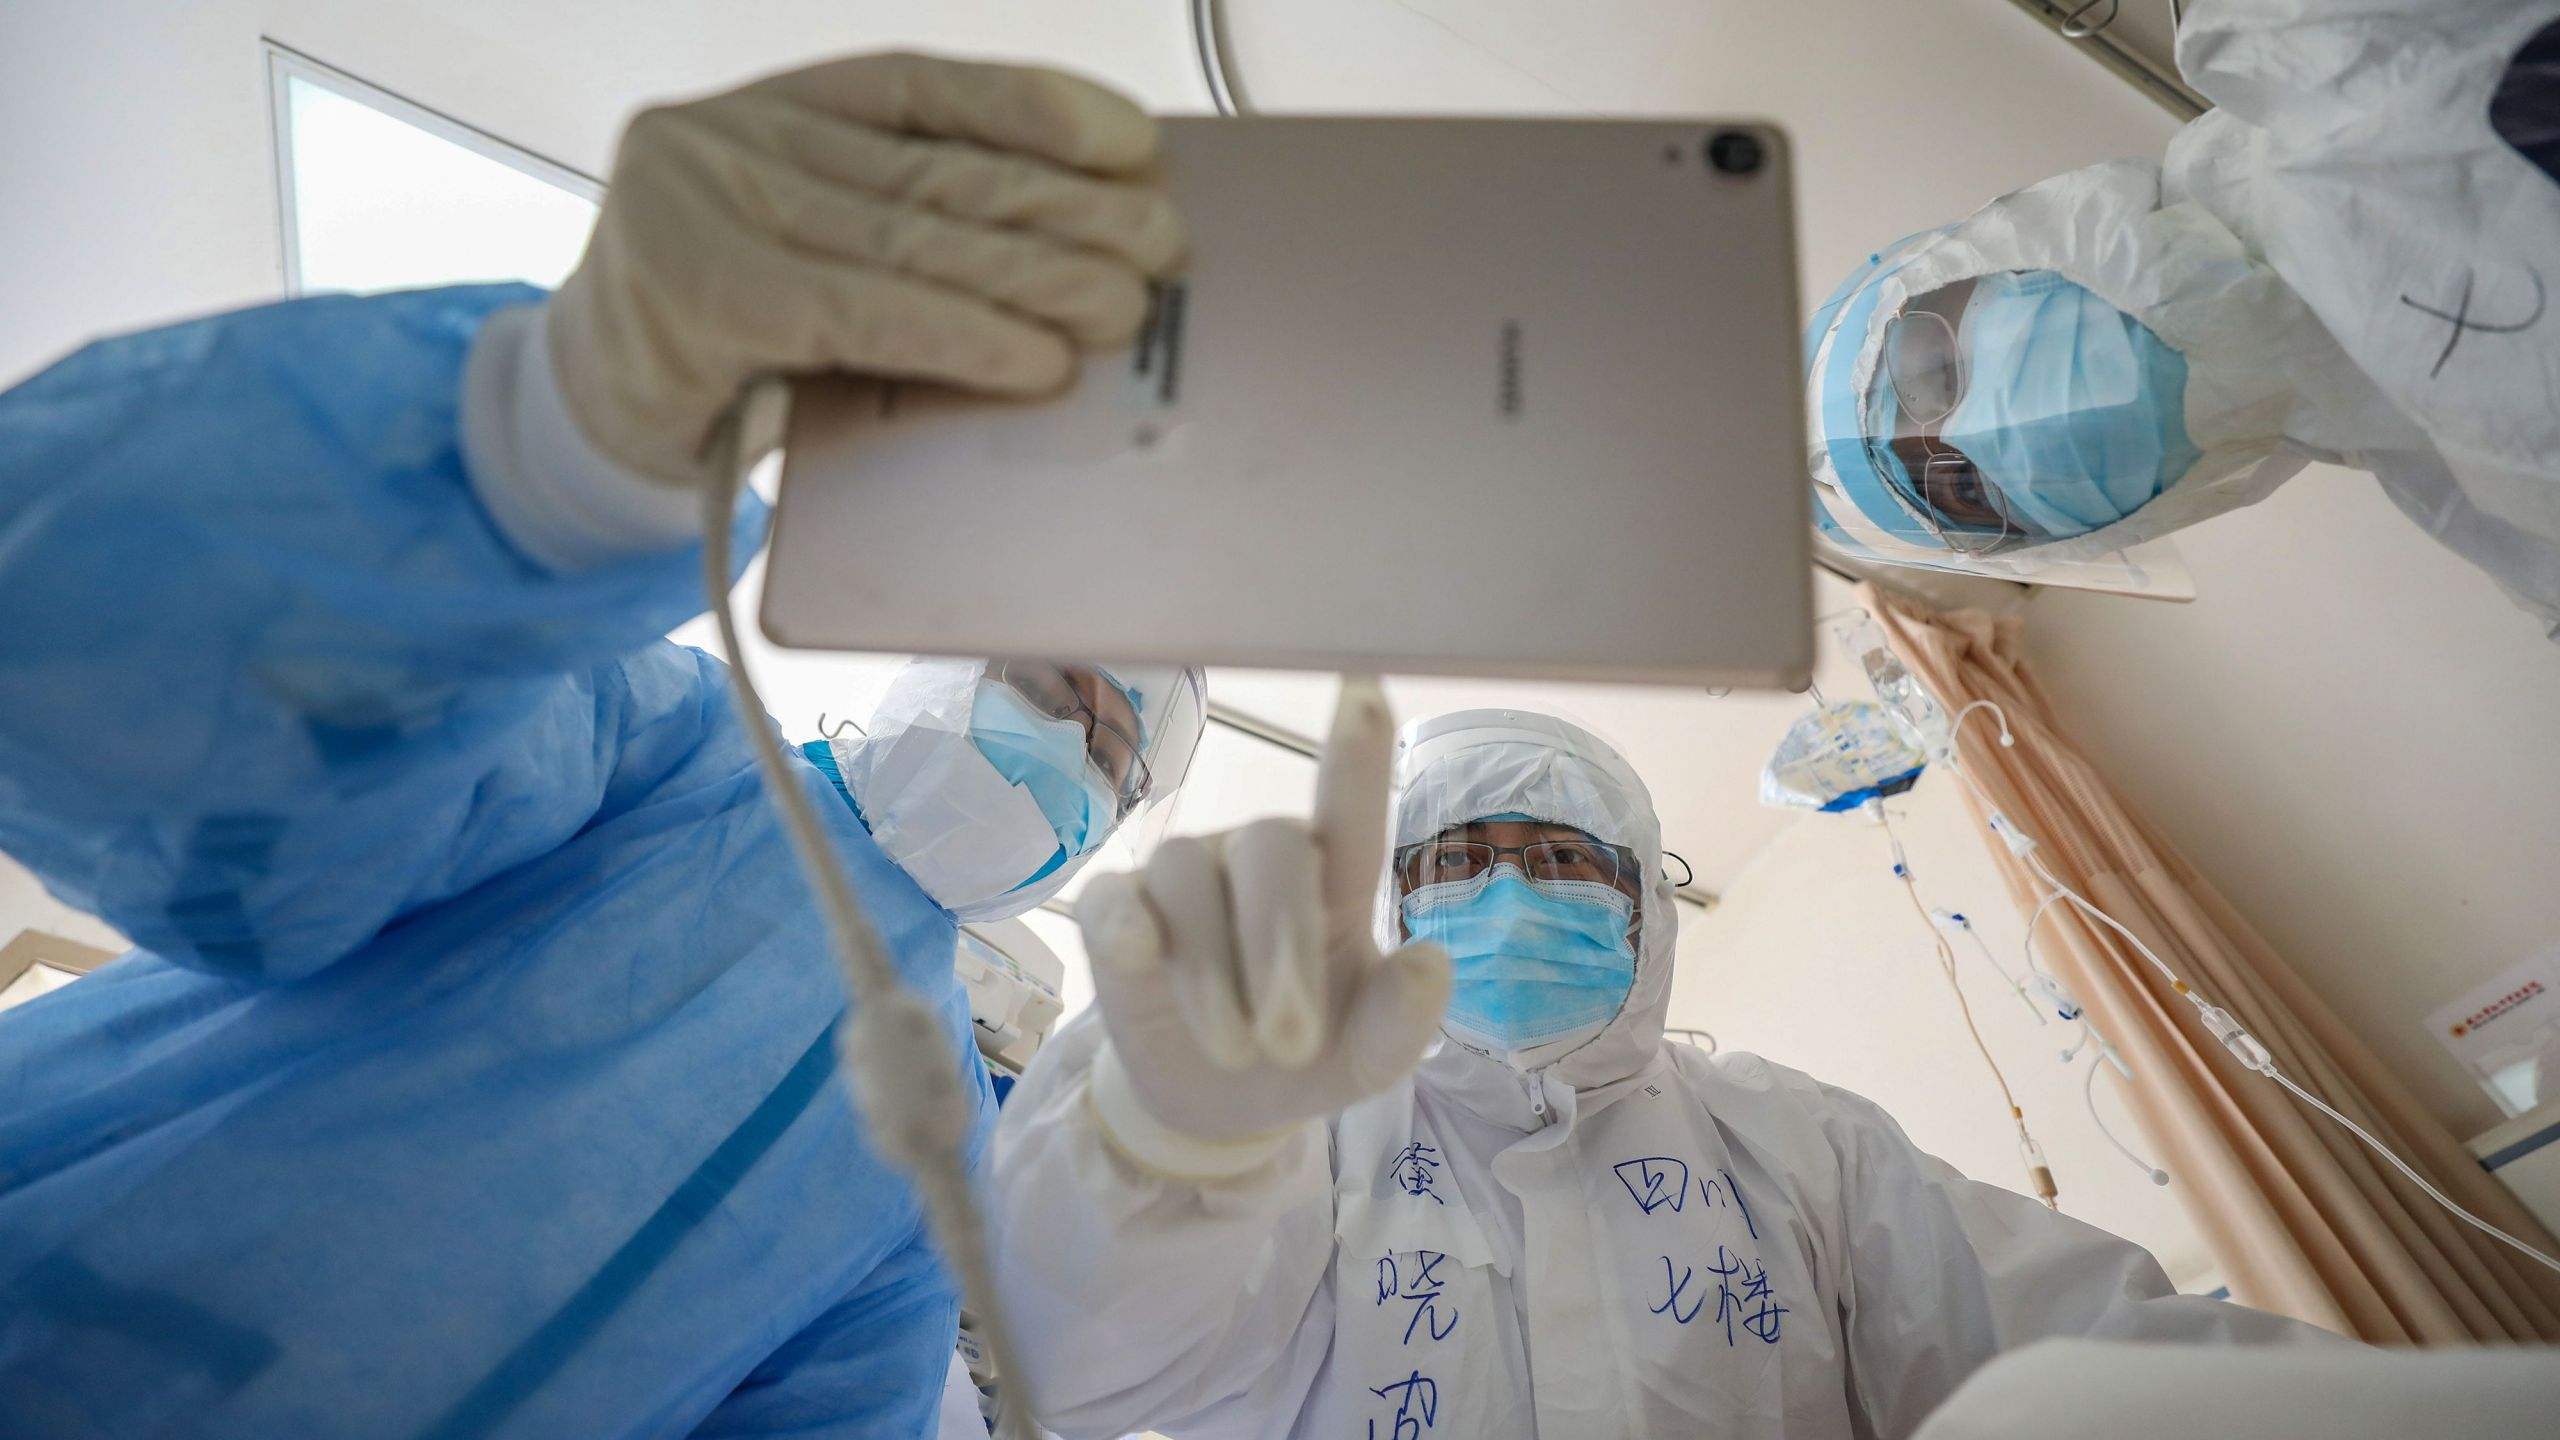 This photo taken on February 16, 2020 shows a doctor looking at an image as he checks a patient who is infected by the COVID-19 coronavirus at the Wuhan Red Cross Hospital in Wuhan in China's central Hubei province. (STR/AFP via Getty Images)